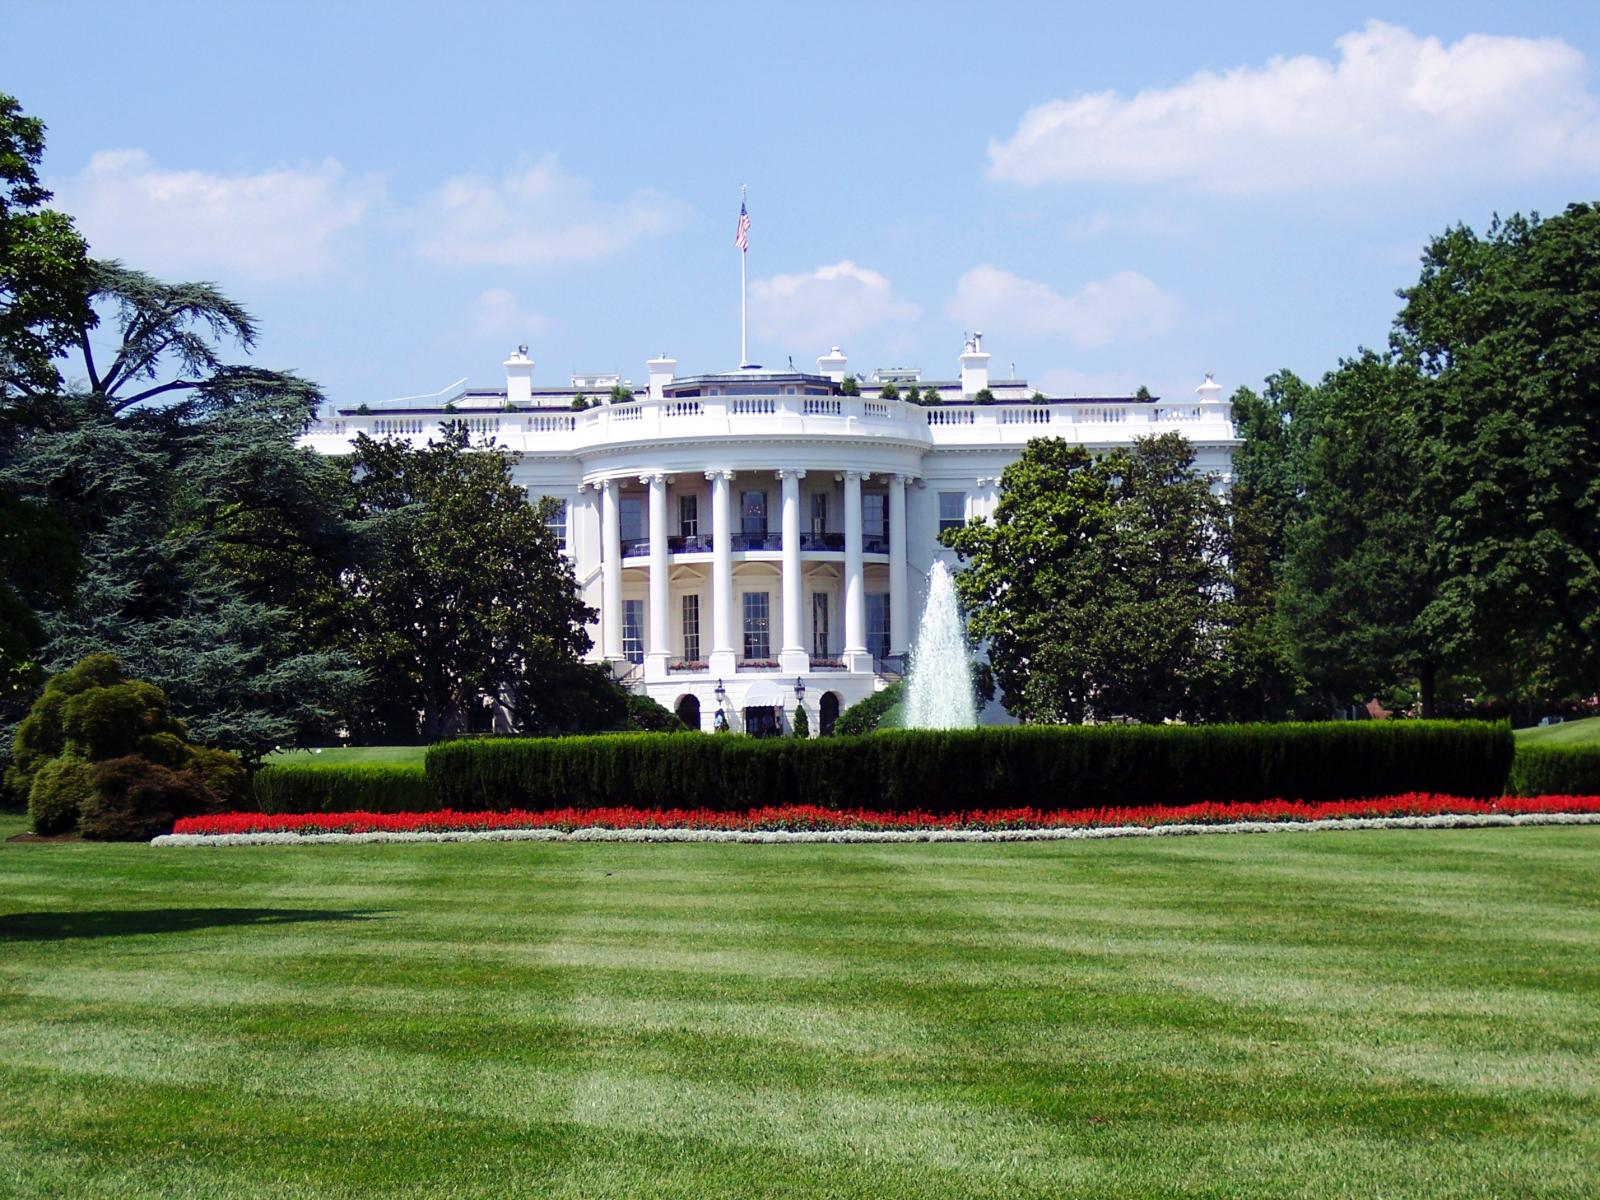 The White House. Photo credit: Pexels